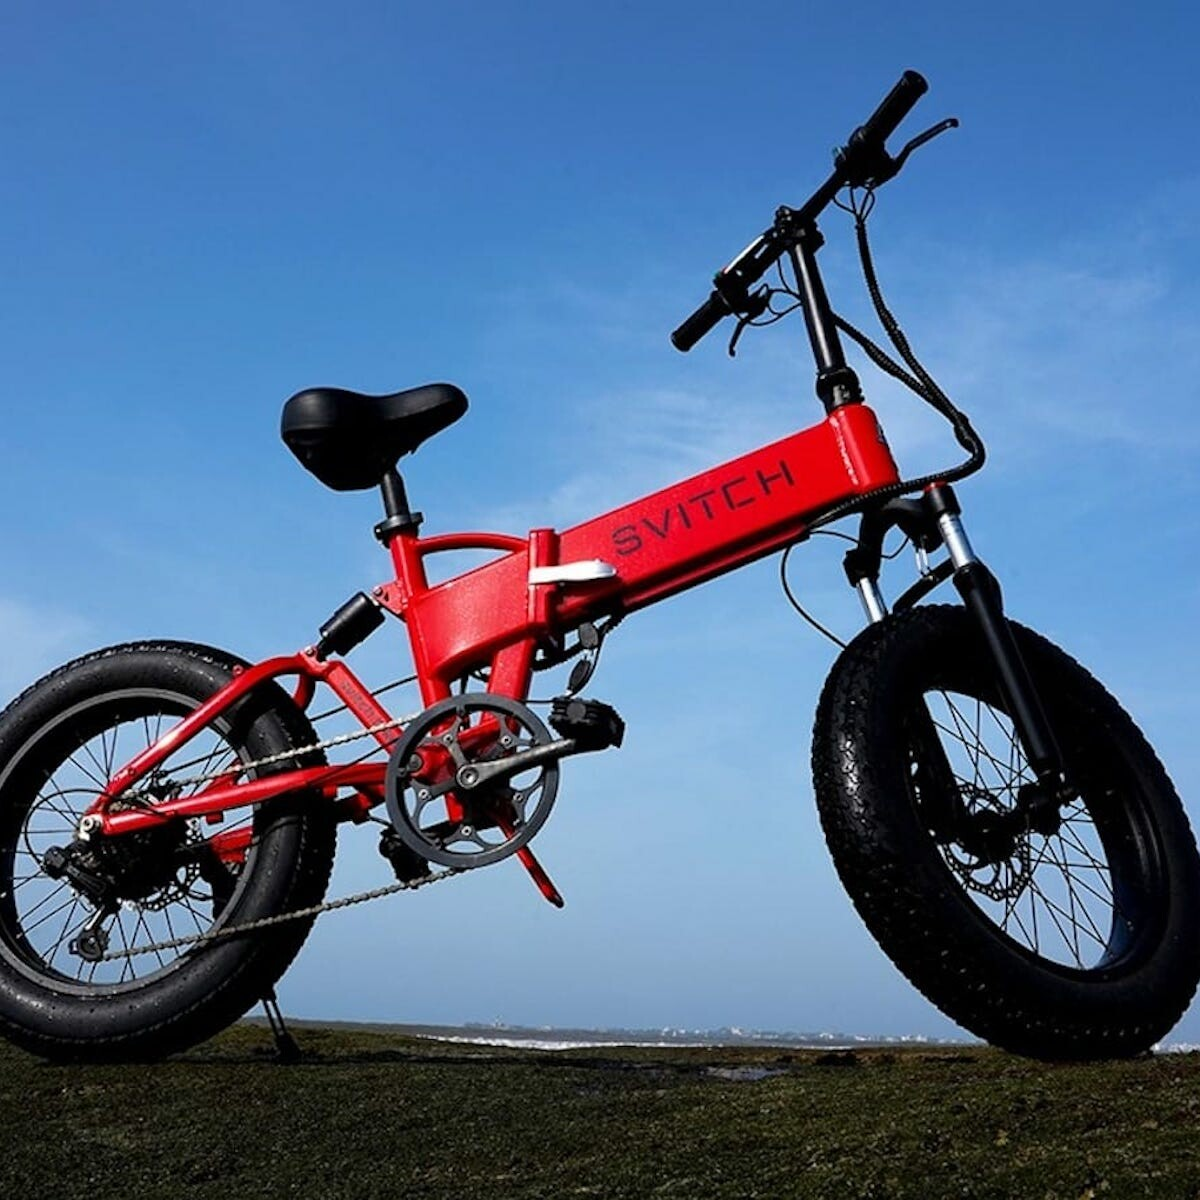 This foldable eBike takes you farther thanks to its swappable battery technology thumbnail